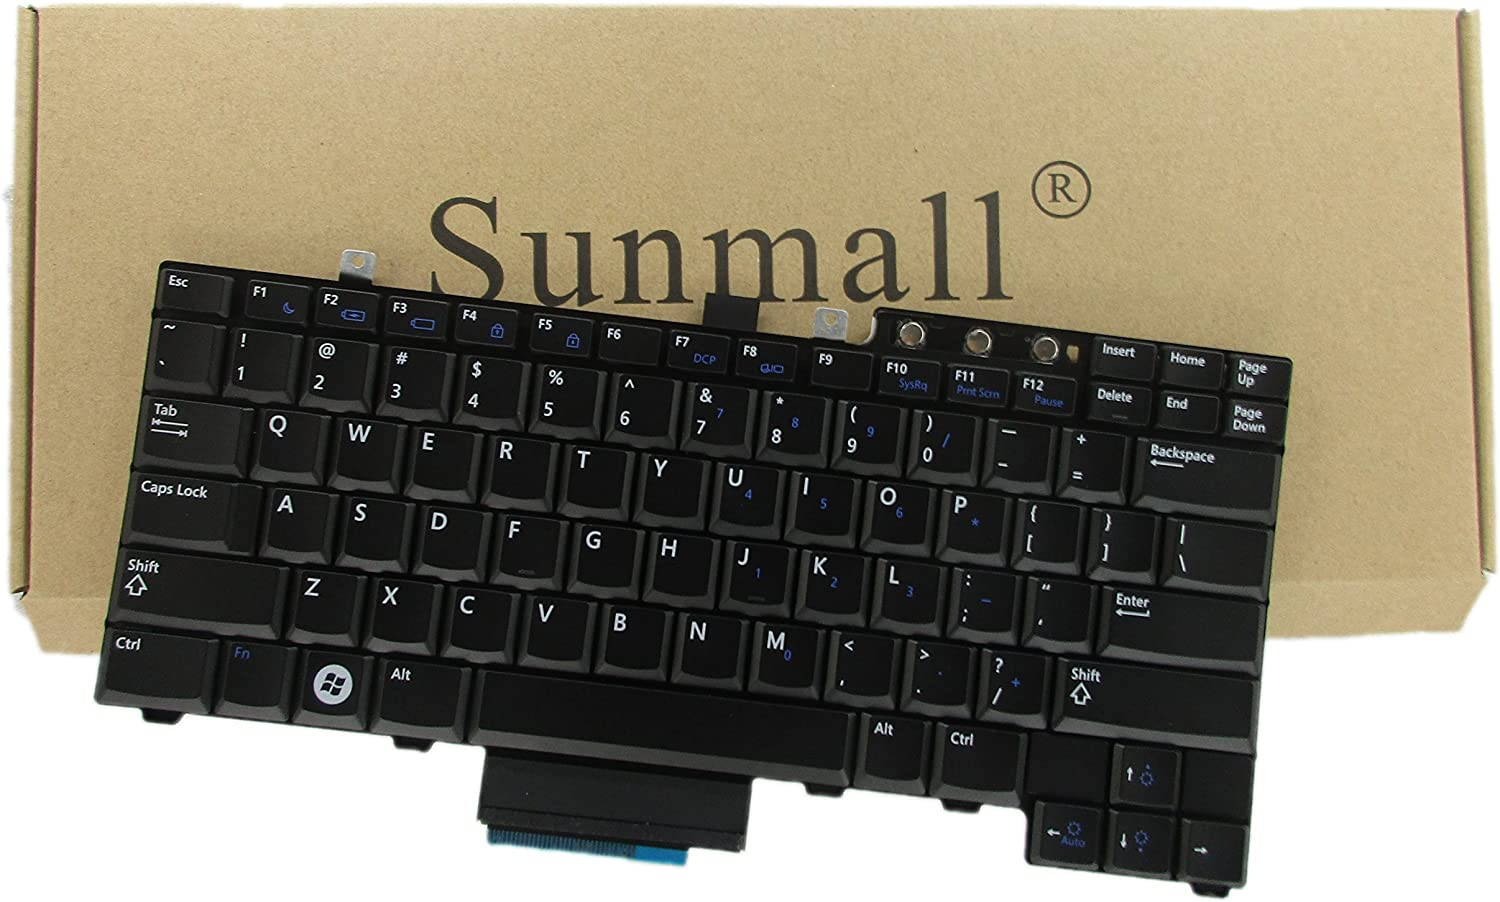 SUNMALL Laptop Keyboard Replacement (NO Pointing Stick) Compatible with Dell Latitude E5300 E5400 E5500 E5410 E5510 Series P/N: FM753 0FM753 FNGF0 0FNGF0 NSK-DBB1D US Layout